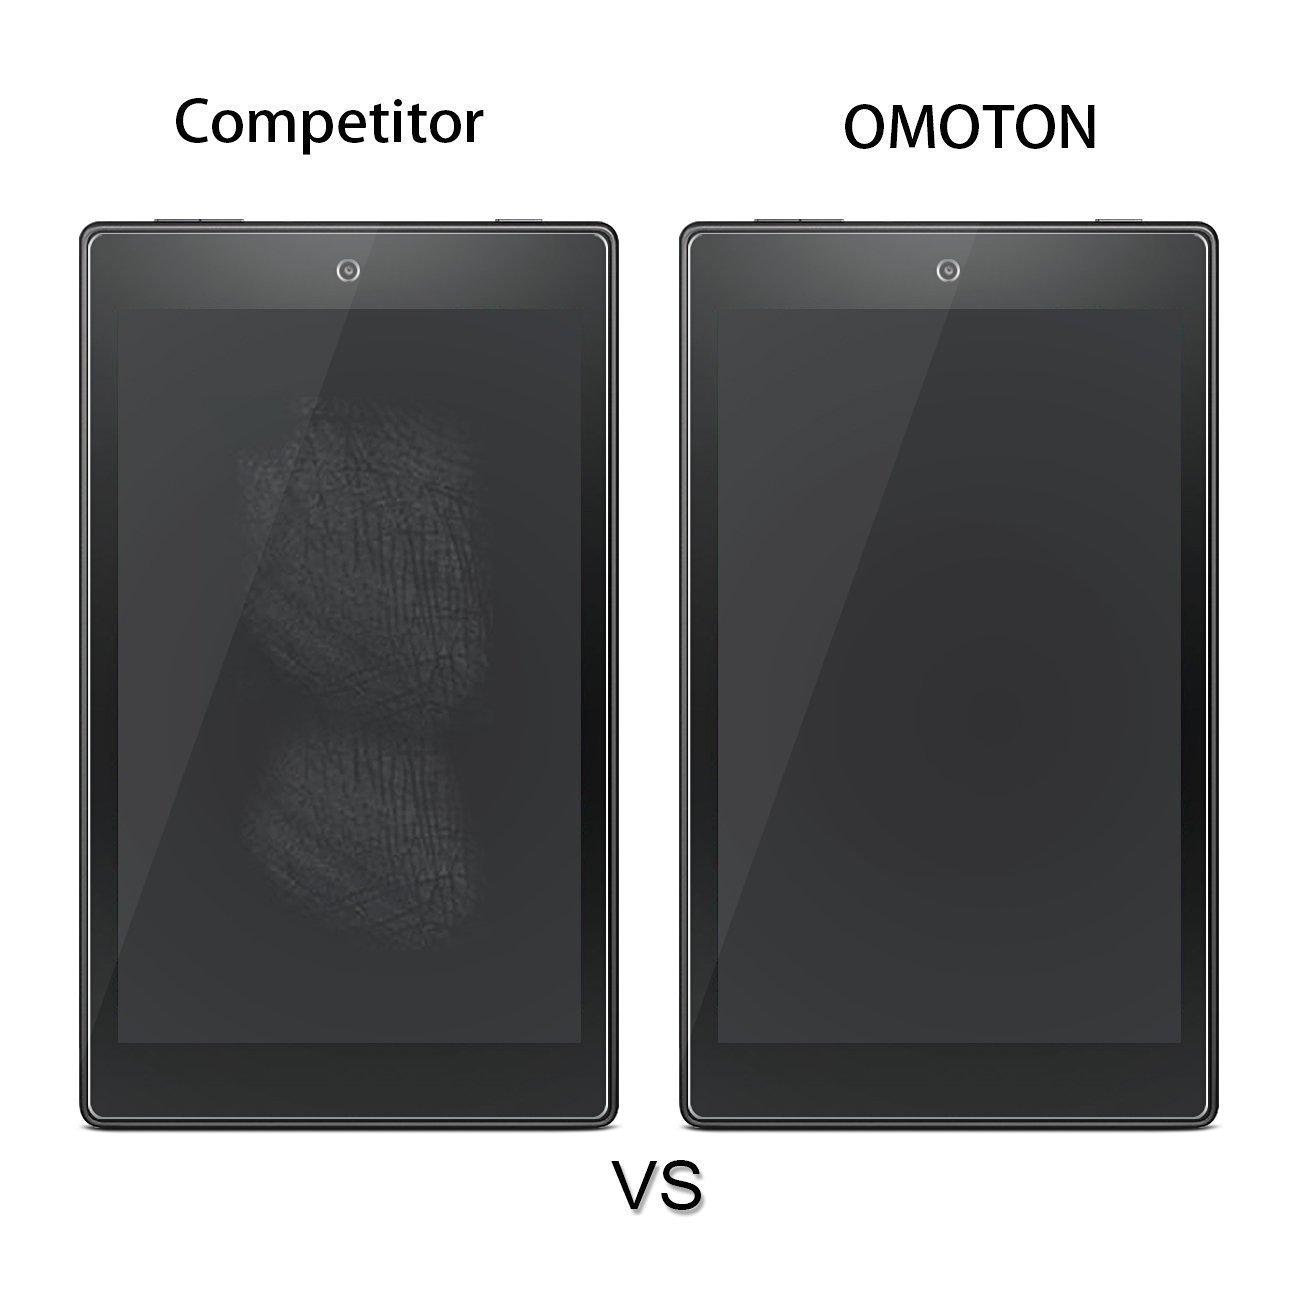 [2-Pack] All-New Fire 7 Screen Protector (2017 Release) - OMOTON Tempered Glass Screen Protector for All-New Fire 7 Tablet with Alexa (2017 Release) by OMOTON (Image #7)